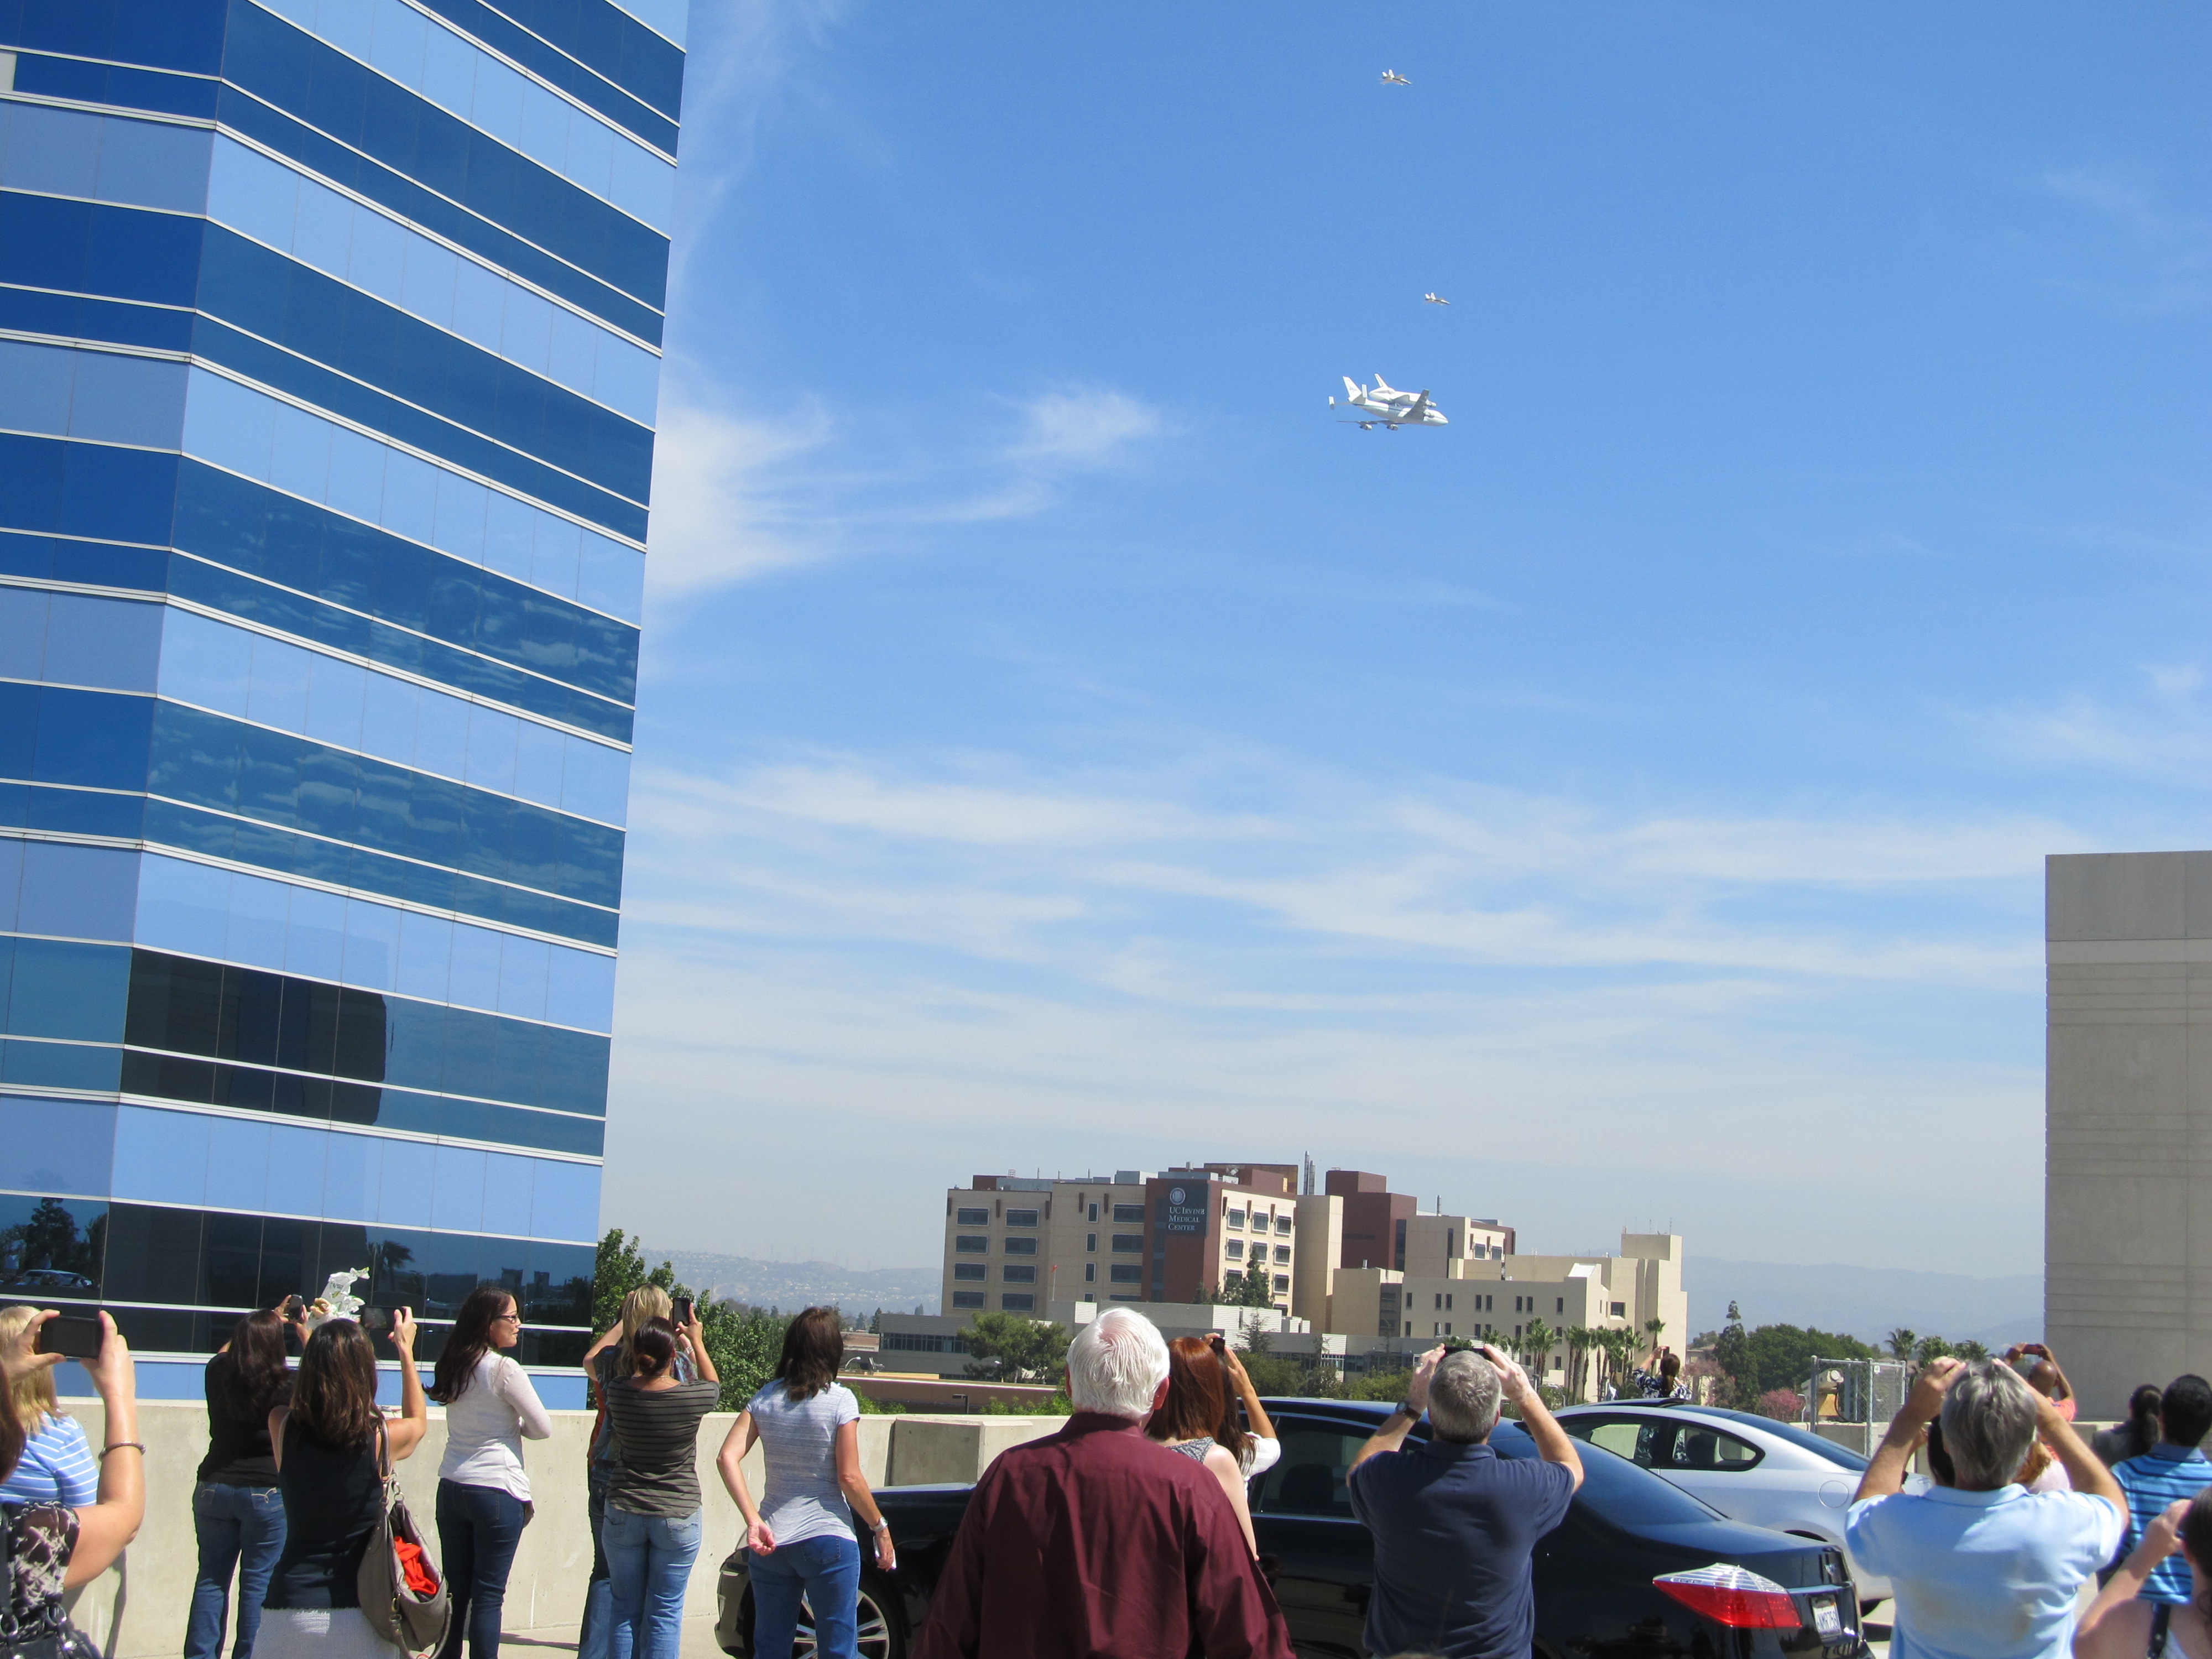 Shuttle Endeavour Over Irvine, Calif.